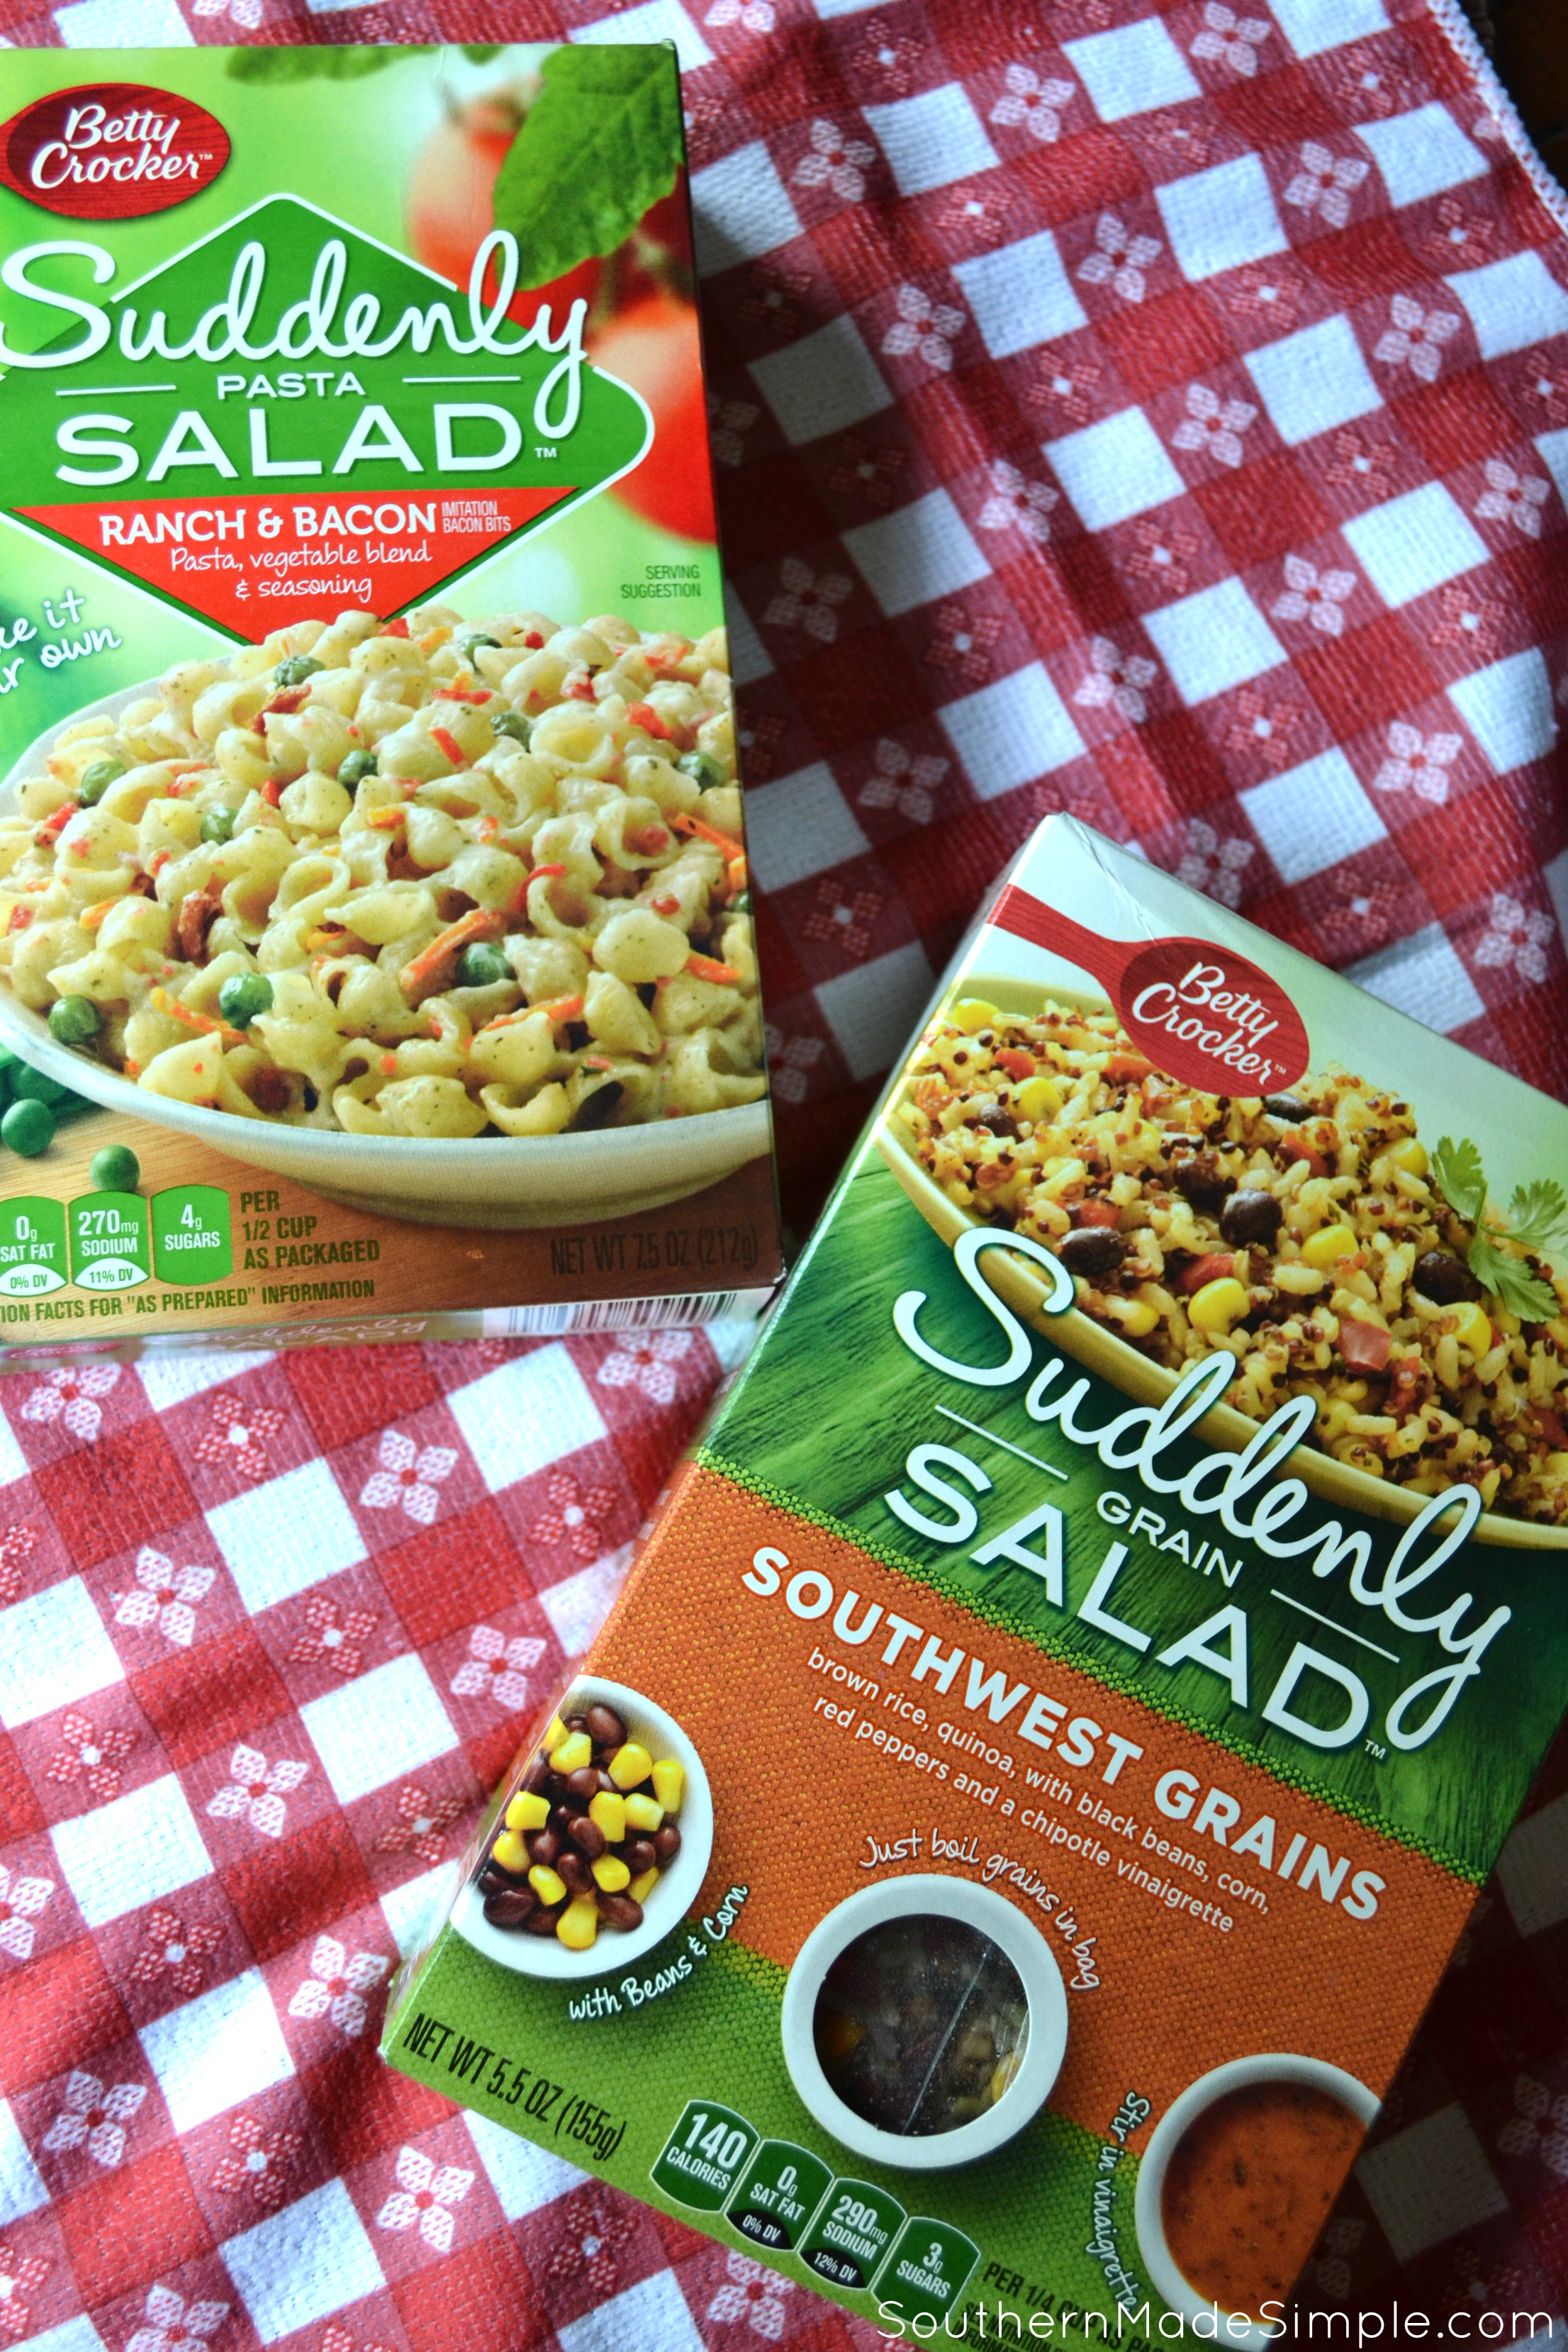 How to Simplify Your 4th of July Menu (And Spice it Up, Too!) #SuddenlySaladSummer #Ad